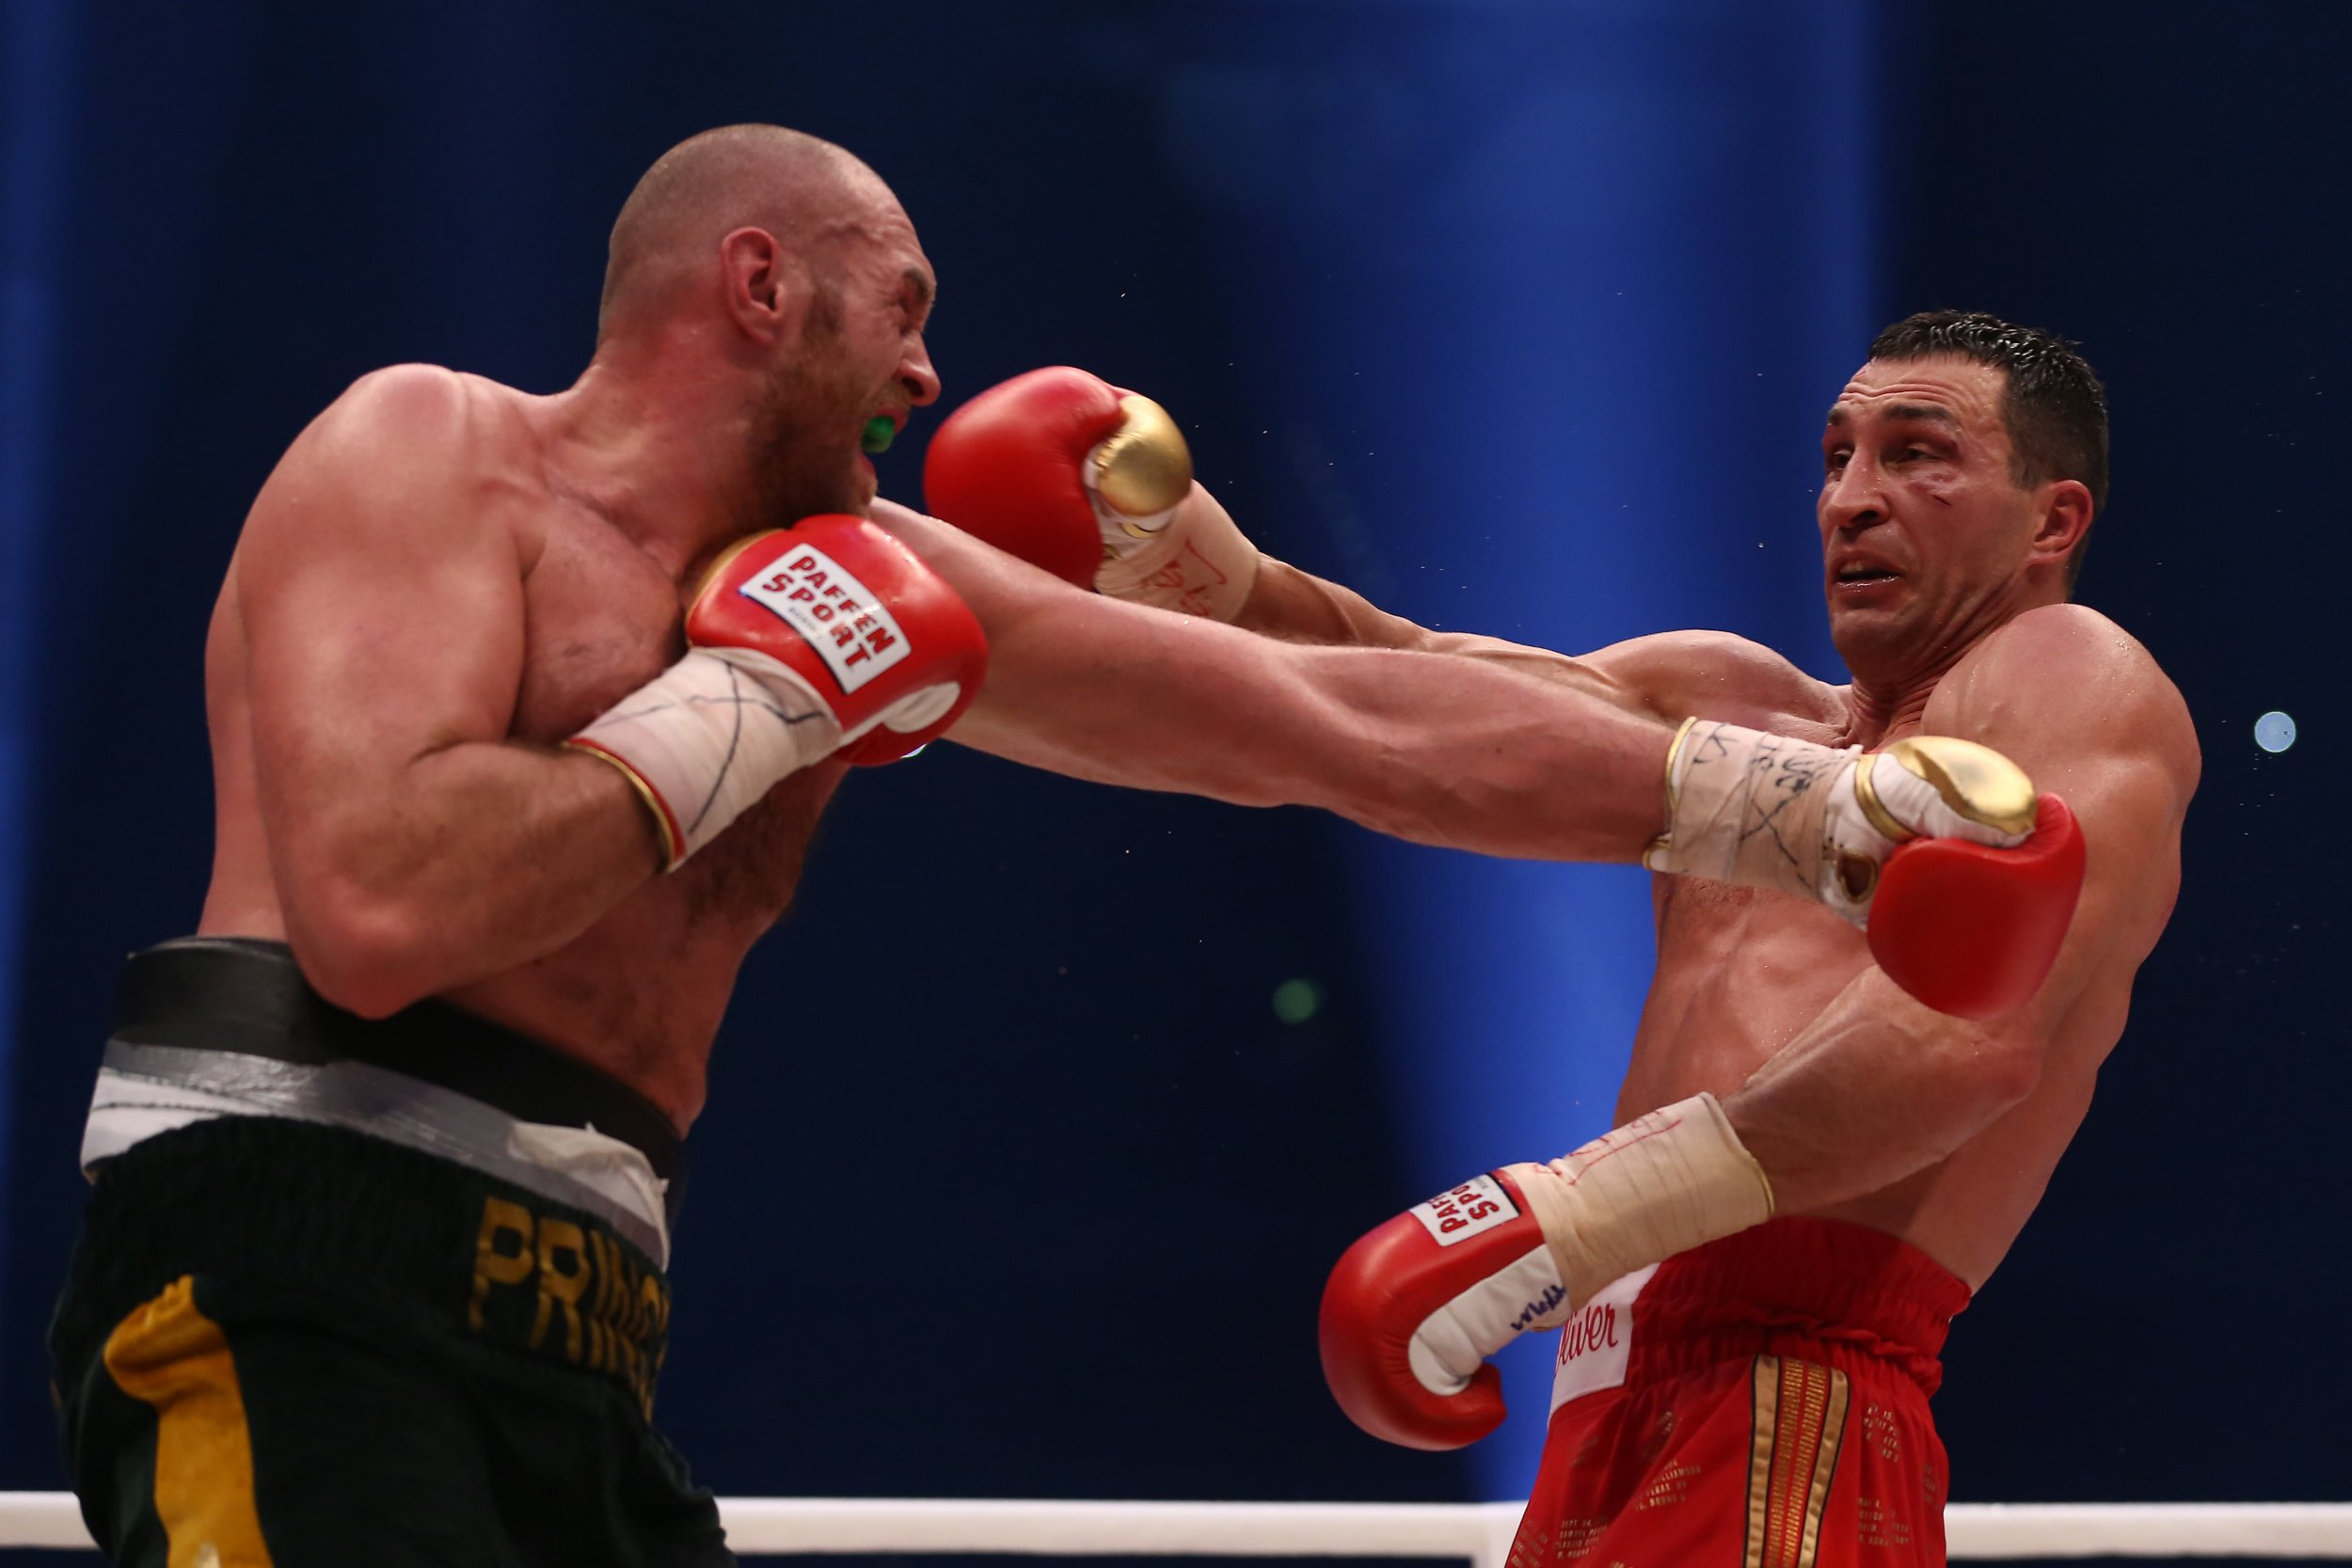 Mandatory Credit: Photo by Action Press/REX/Shutterstock (5450179bf) Wladimir Klitschko and Tyson Fury Wladimir Klitschko vs Tyson Fury, Boxing World Heavyweight title, Dusseldorf, Germany - 28 Nov 2015